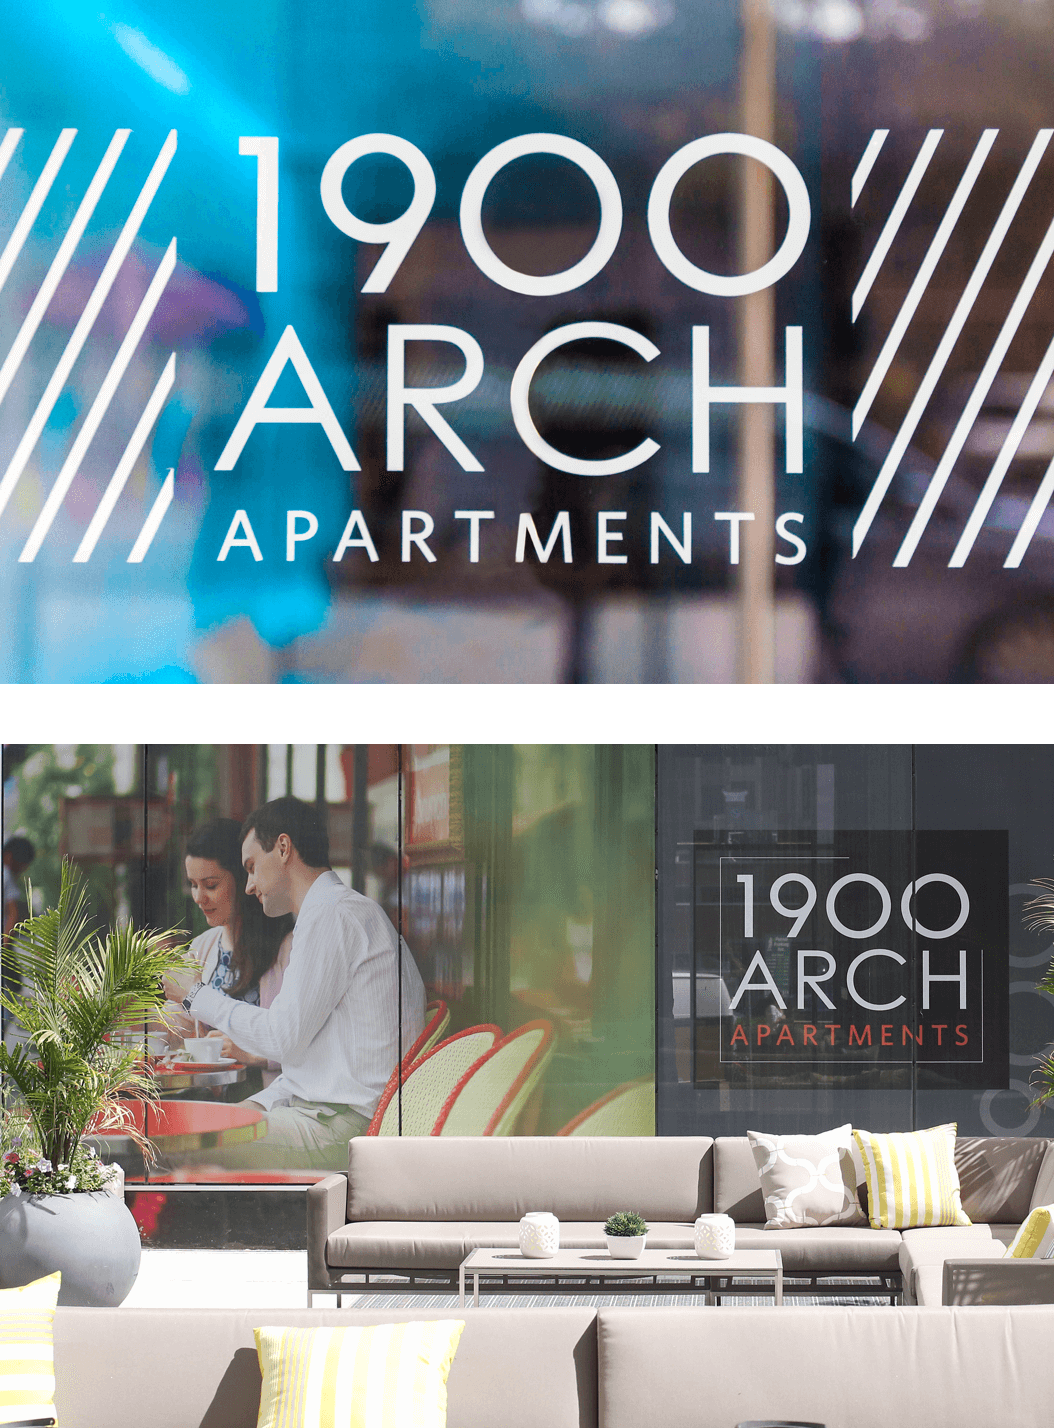 signs for 1900 Arch Apartments